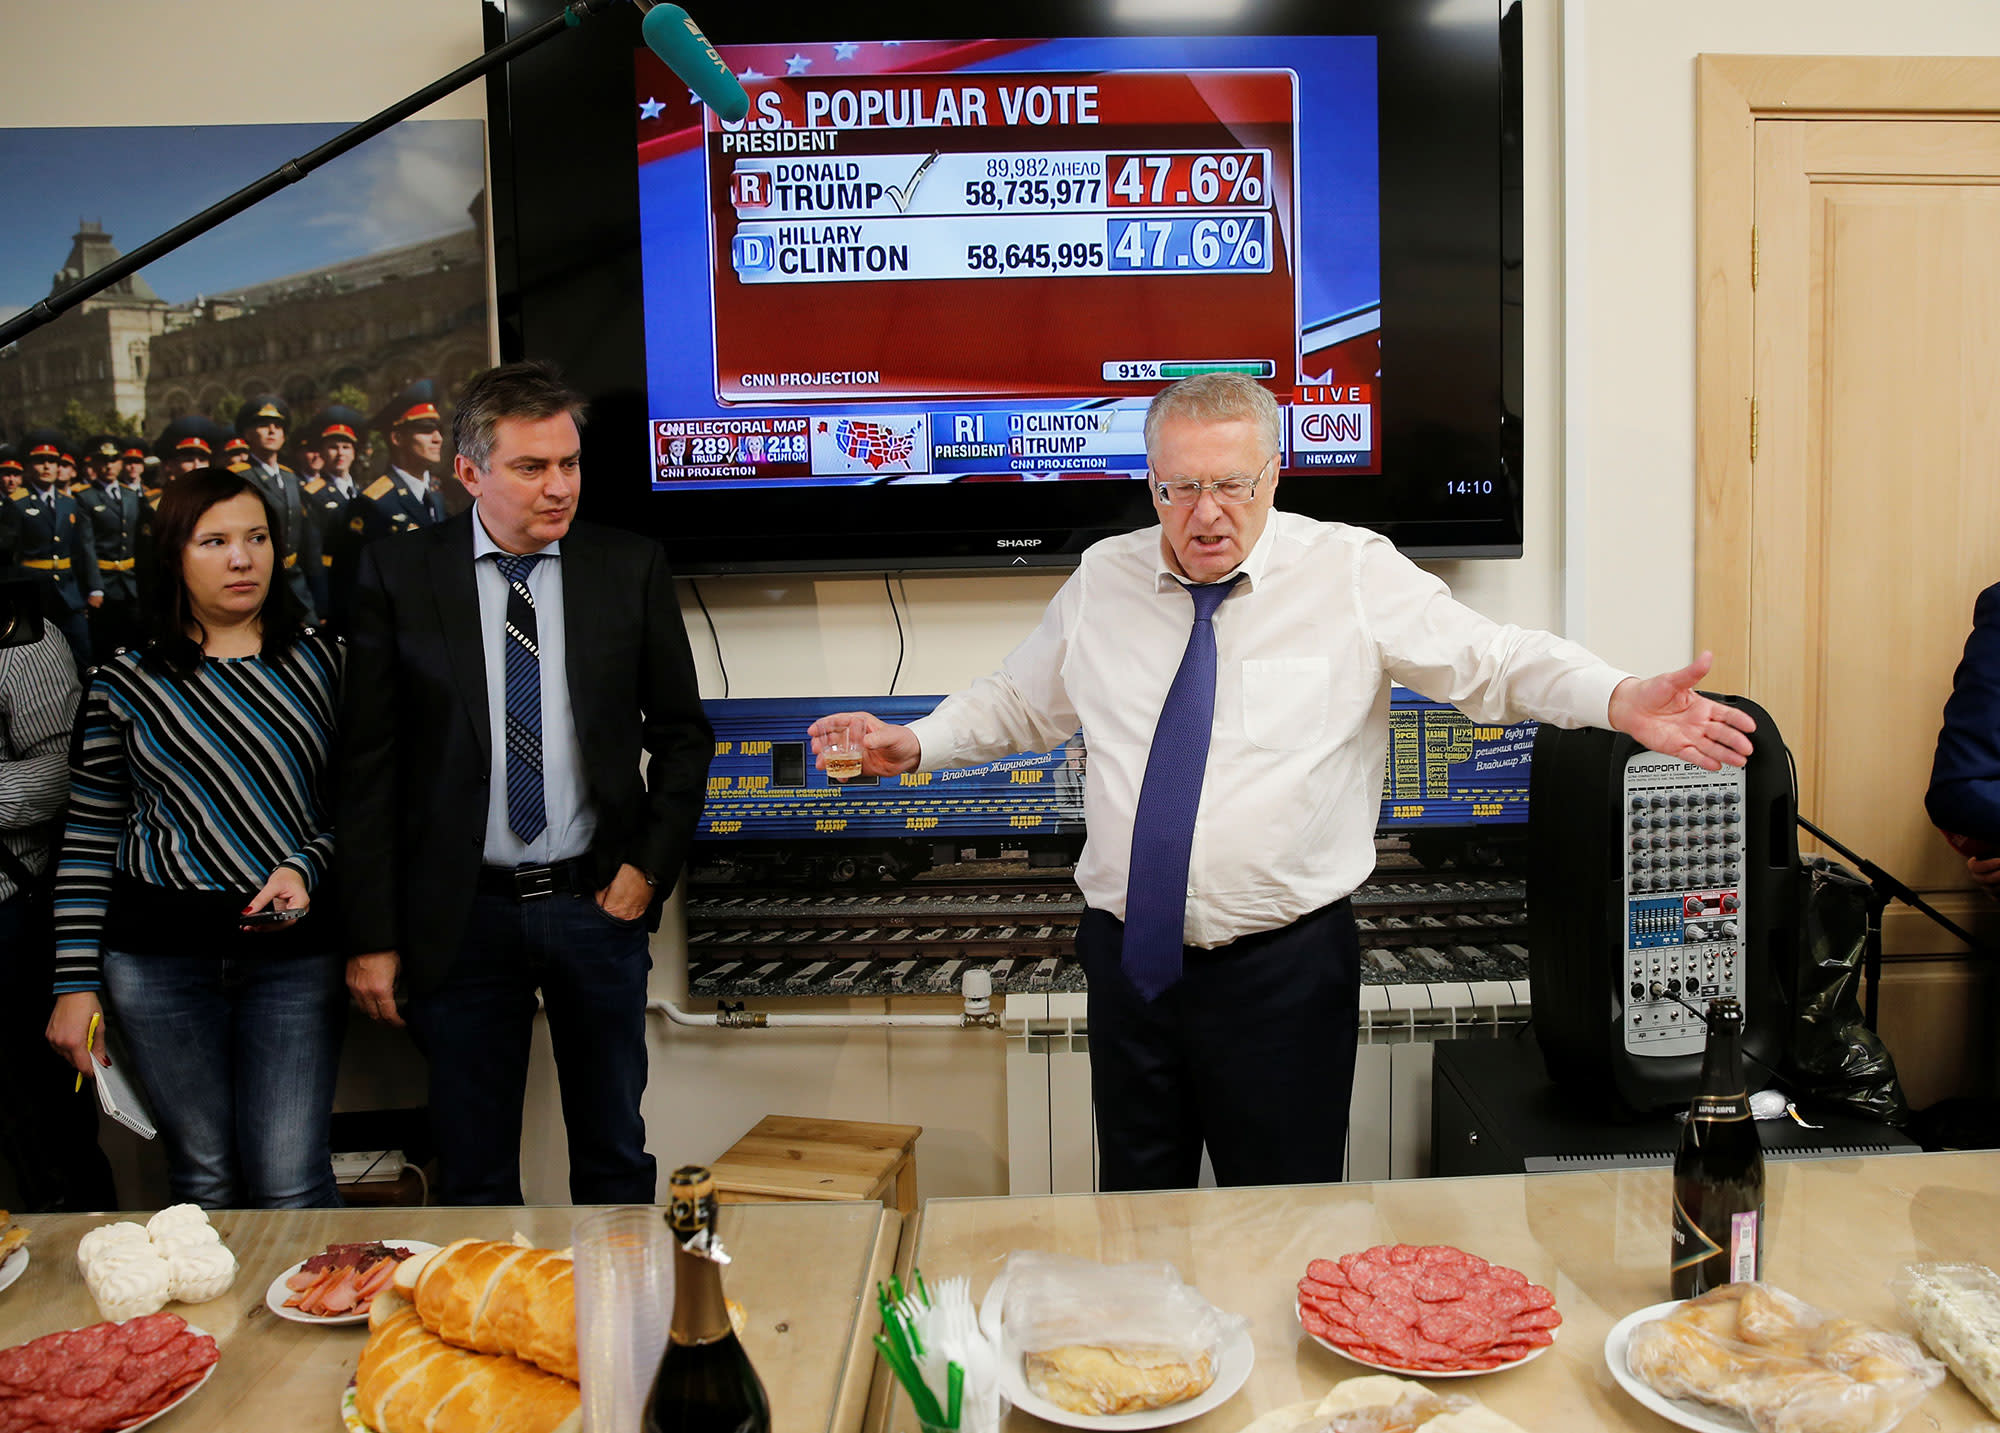 <p>Head of the Liberal Democratic Party of Russia (LDPR) Vladimir Zhirinovsky celebrates Donald Trump's election as president by drinking sparkling wine with other party members during a break in the session of the State Duma, the lower house of parliament, in Moscow, Russia on Nov. 9, 2016.(Photo: Maxim Zmeyev/Reuters) </p>